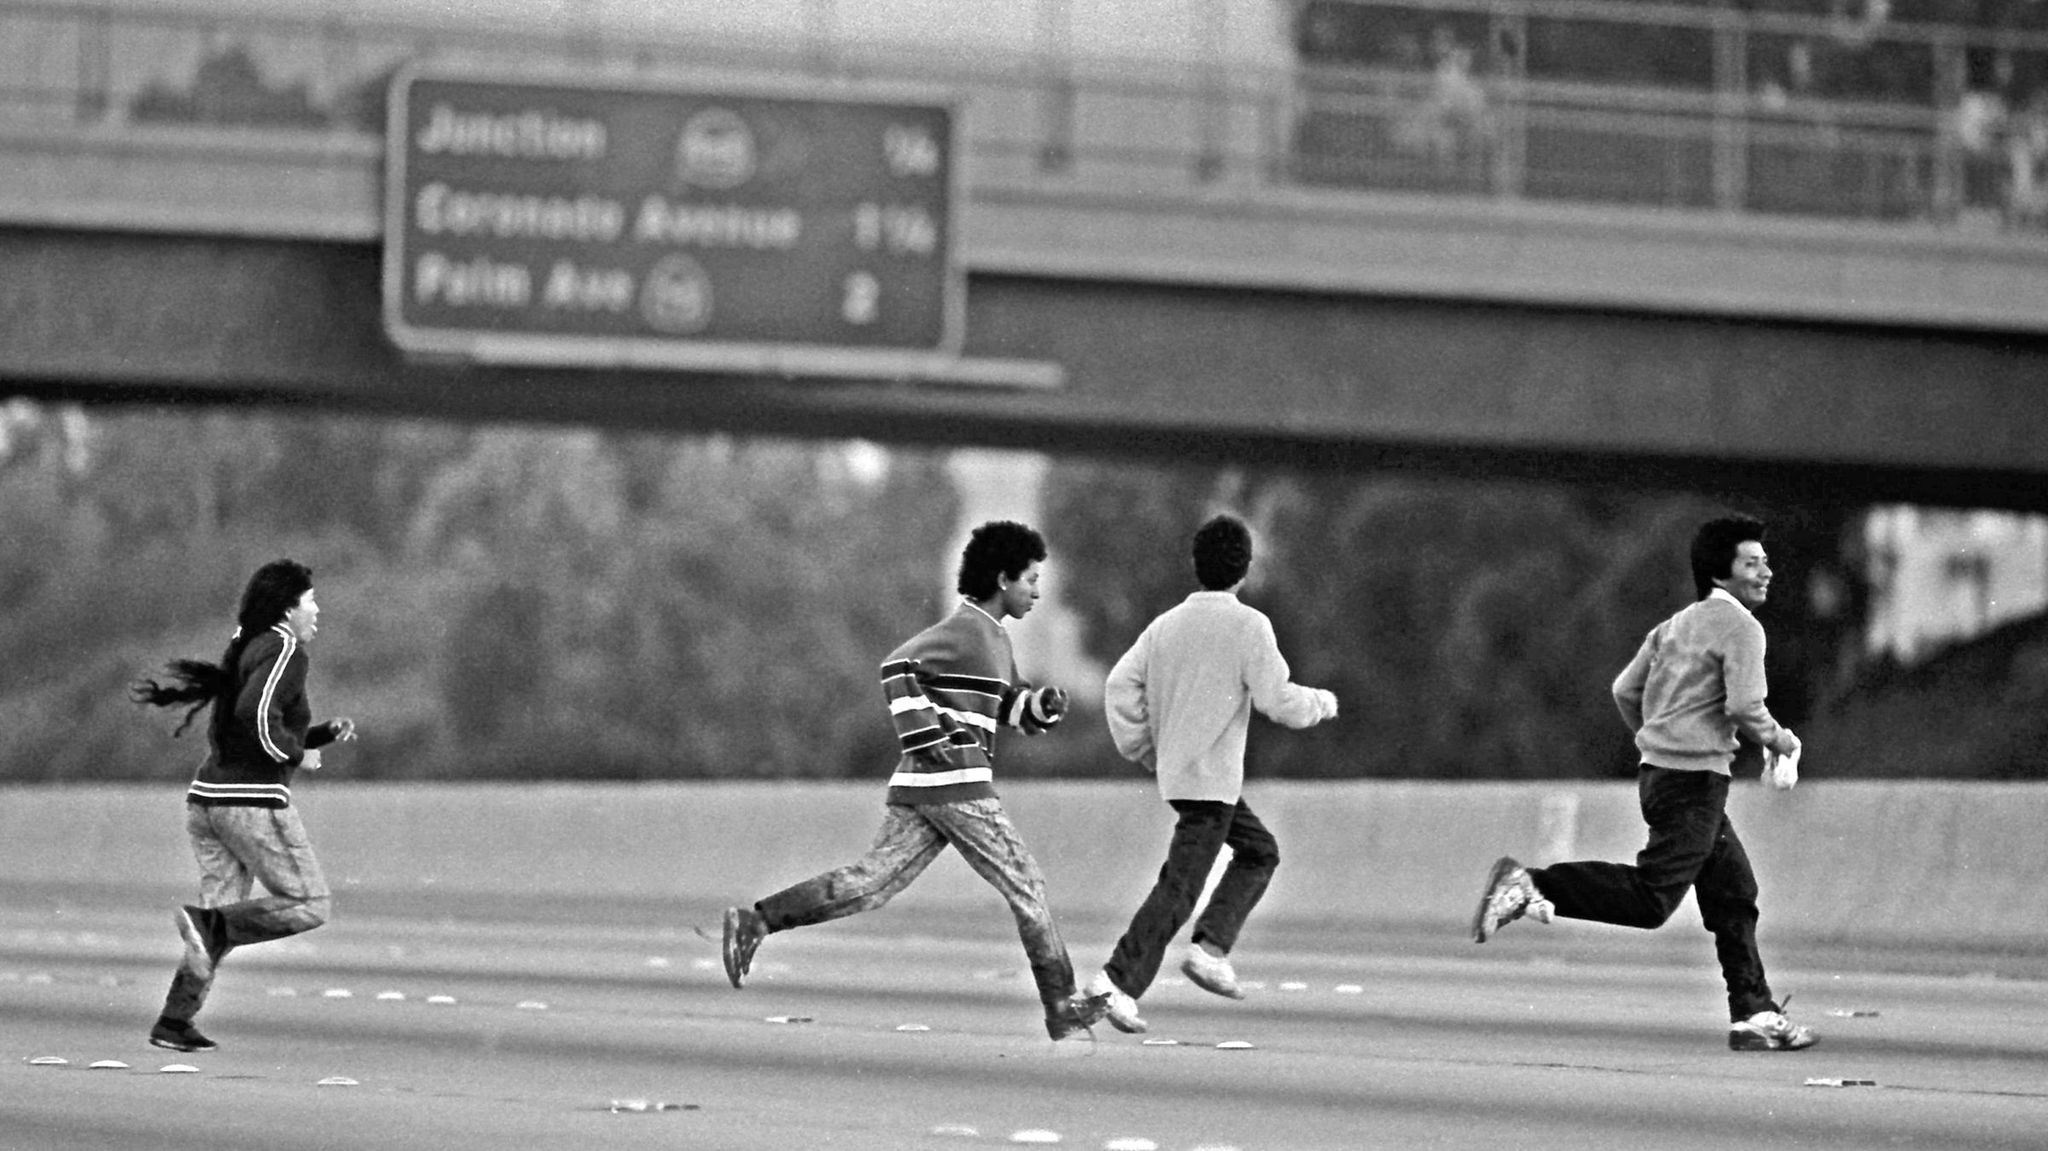 Young people sprint across the 5 Freeway with their pant legs still wet after walking in the nearby Tijuana River in this 1990 file photo.